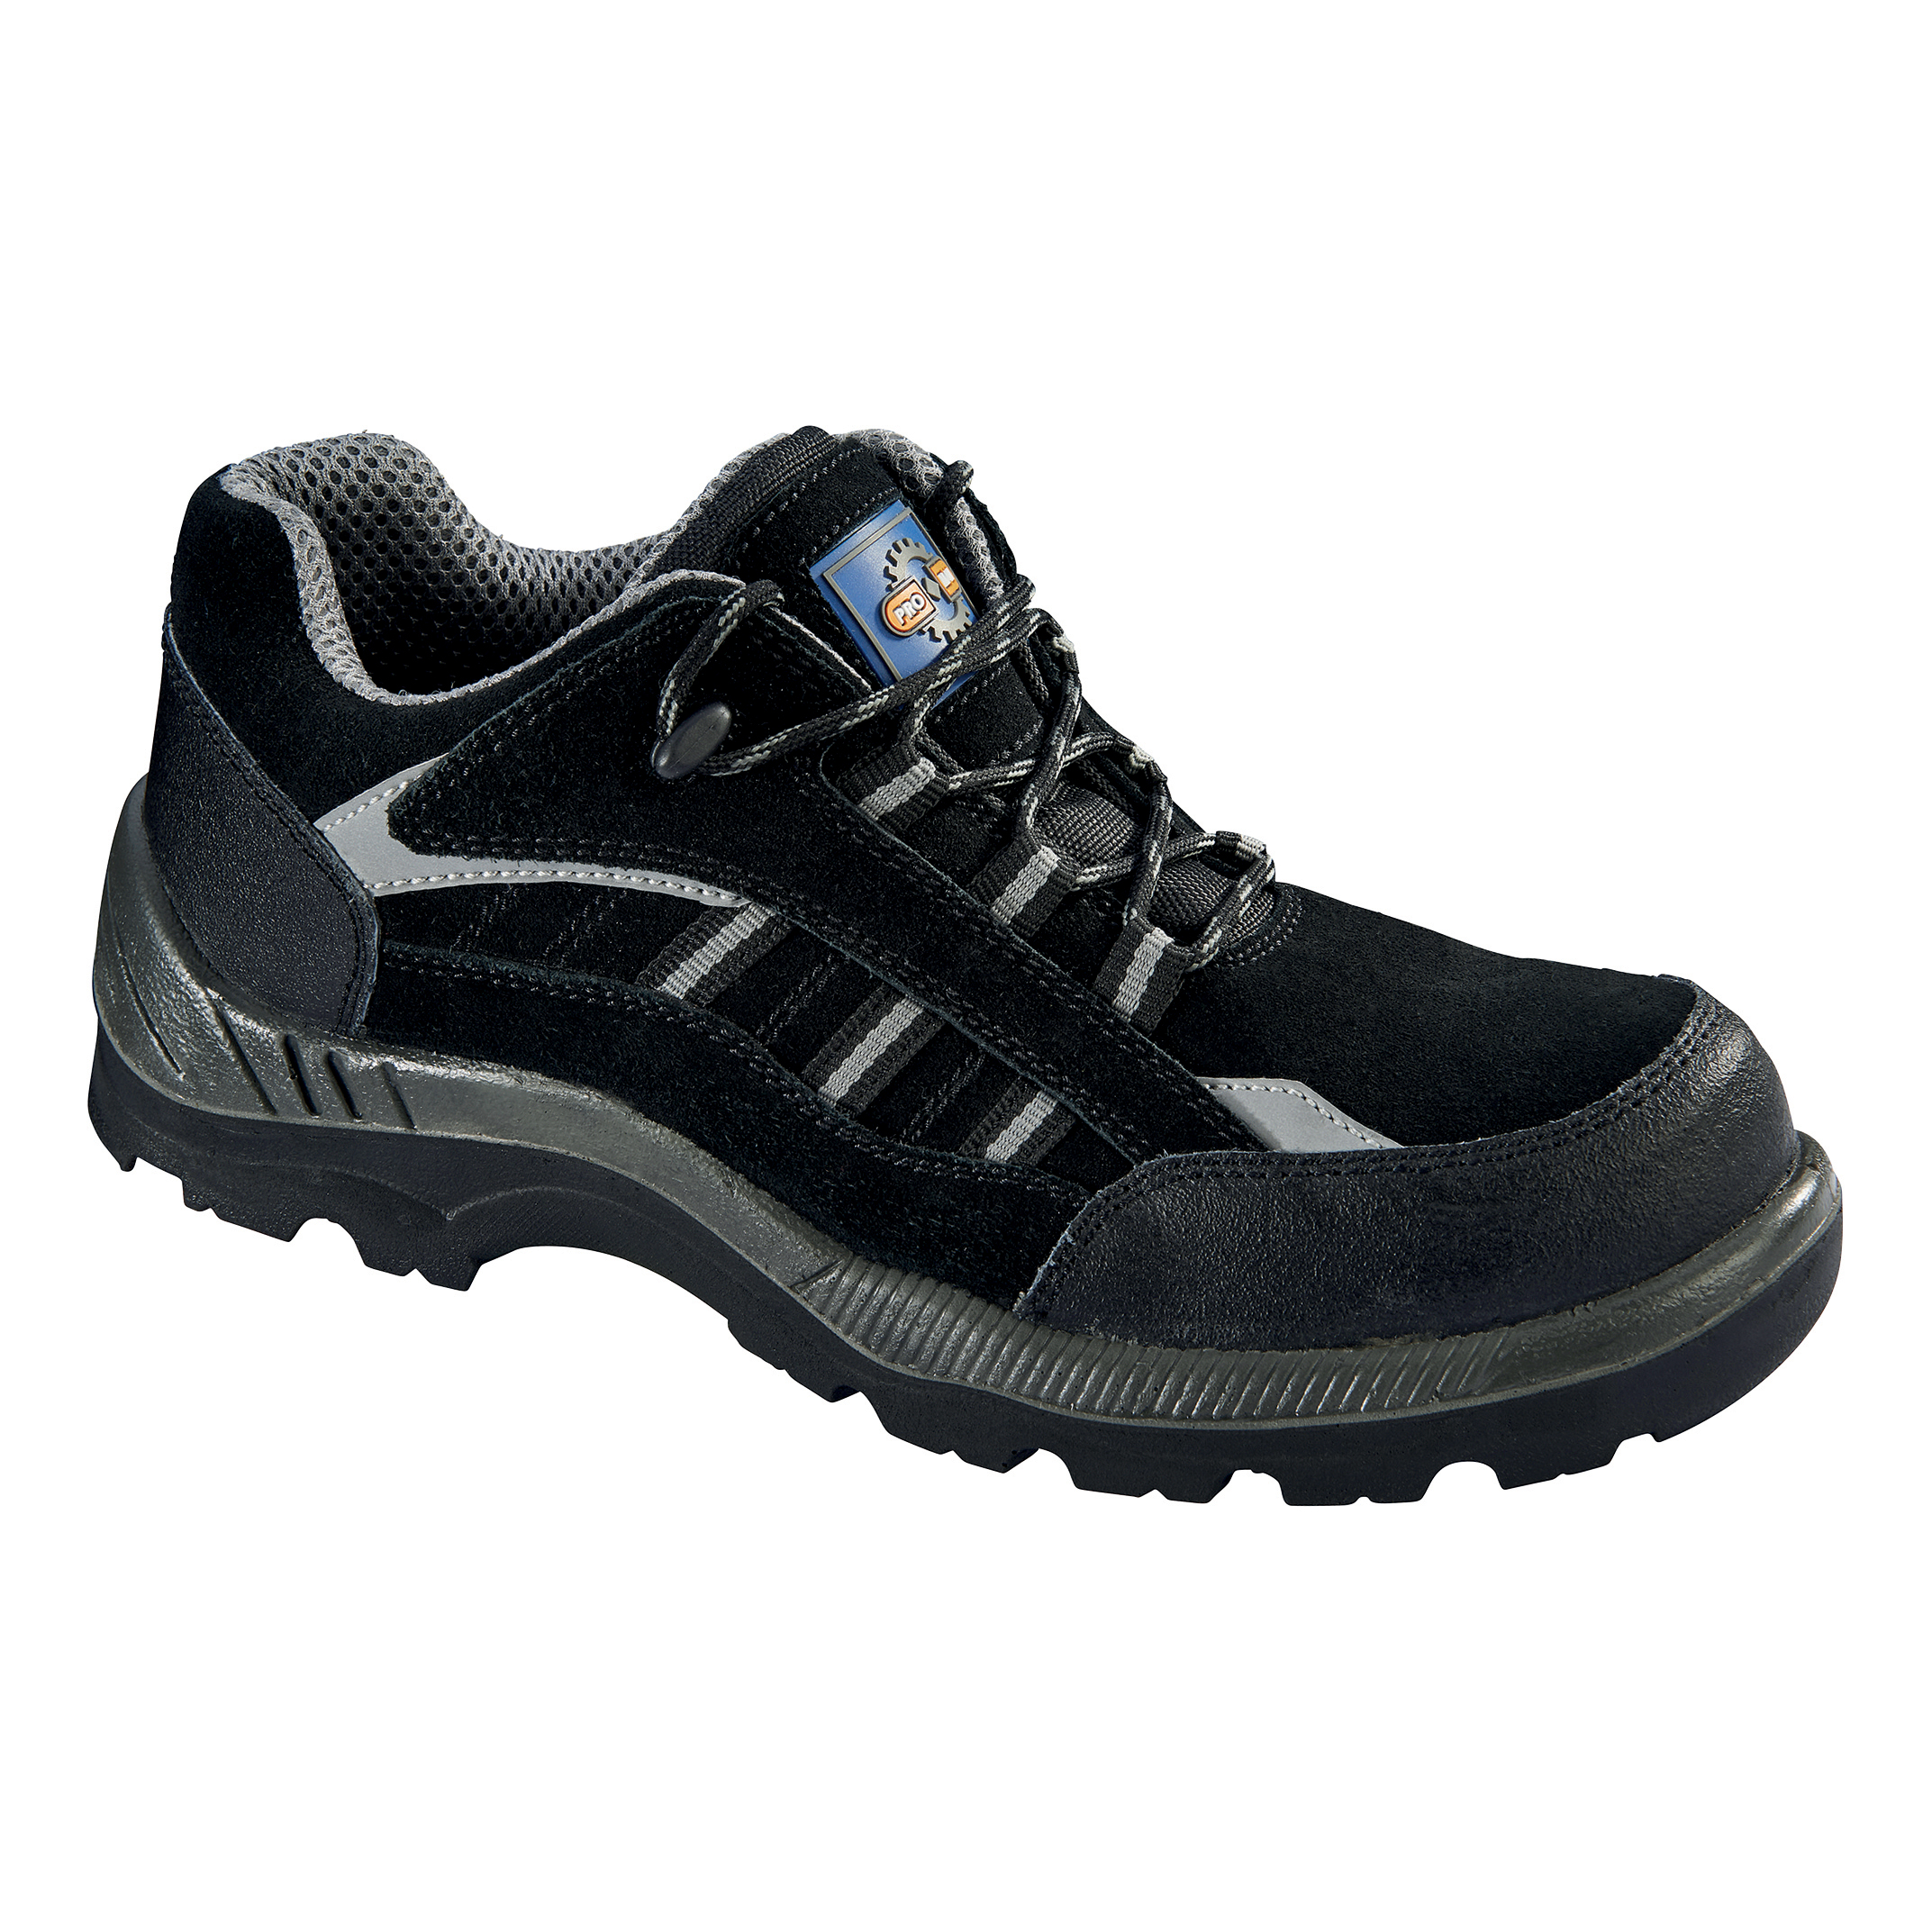 Safety shoes Rockfall ProMan Trainer Suede Fibreglass Toecap Black Size 11 Ref PM4040 11